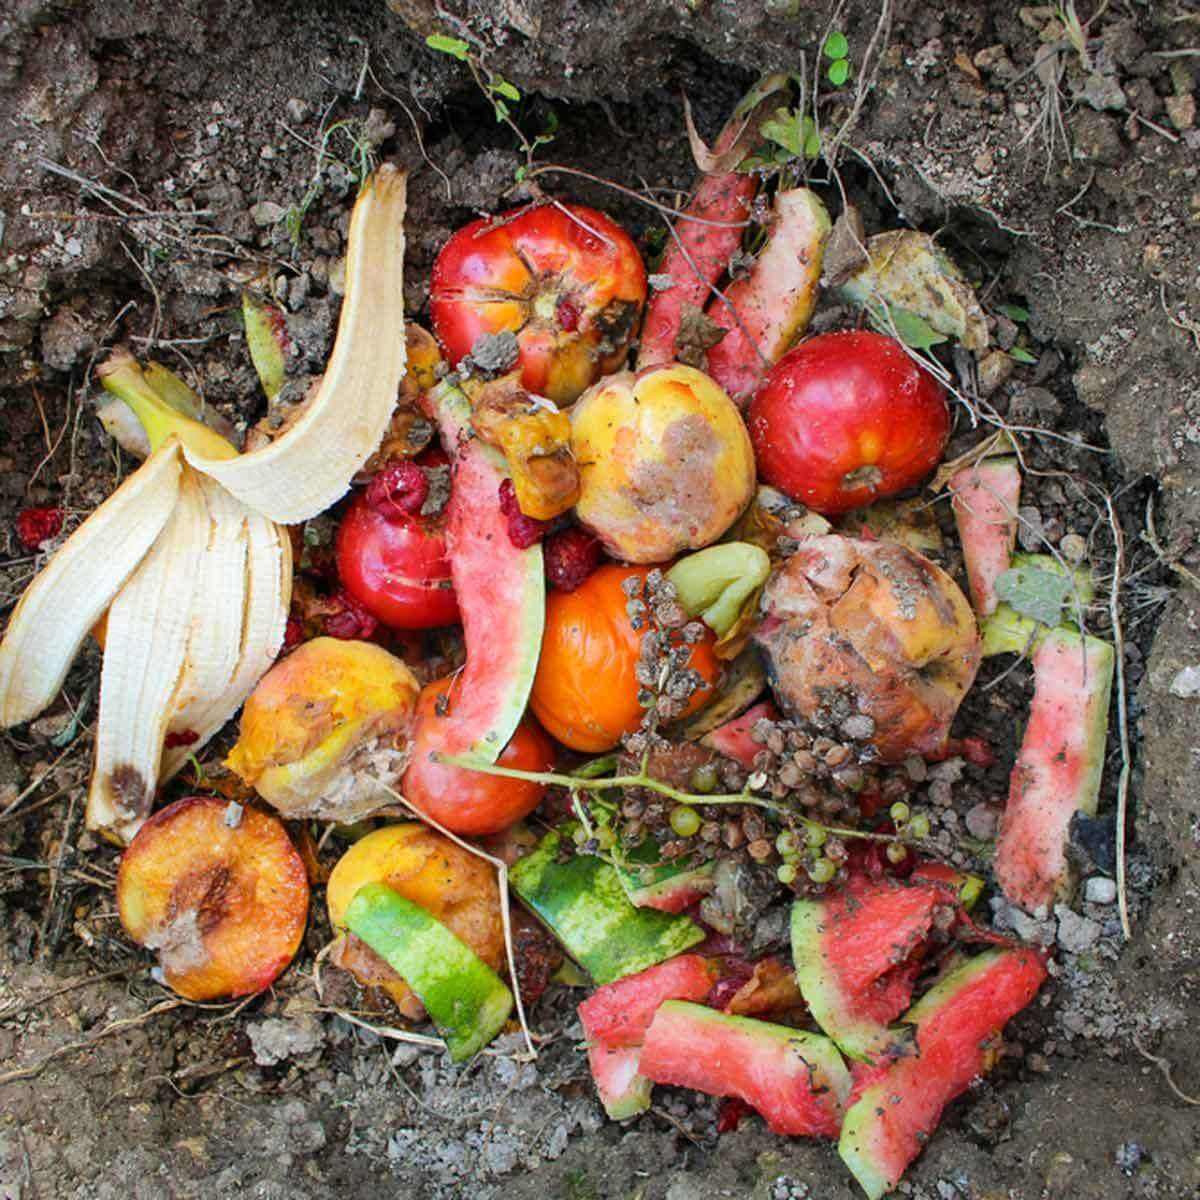 food scraps in compost